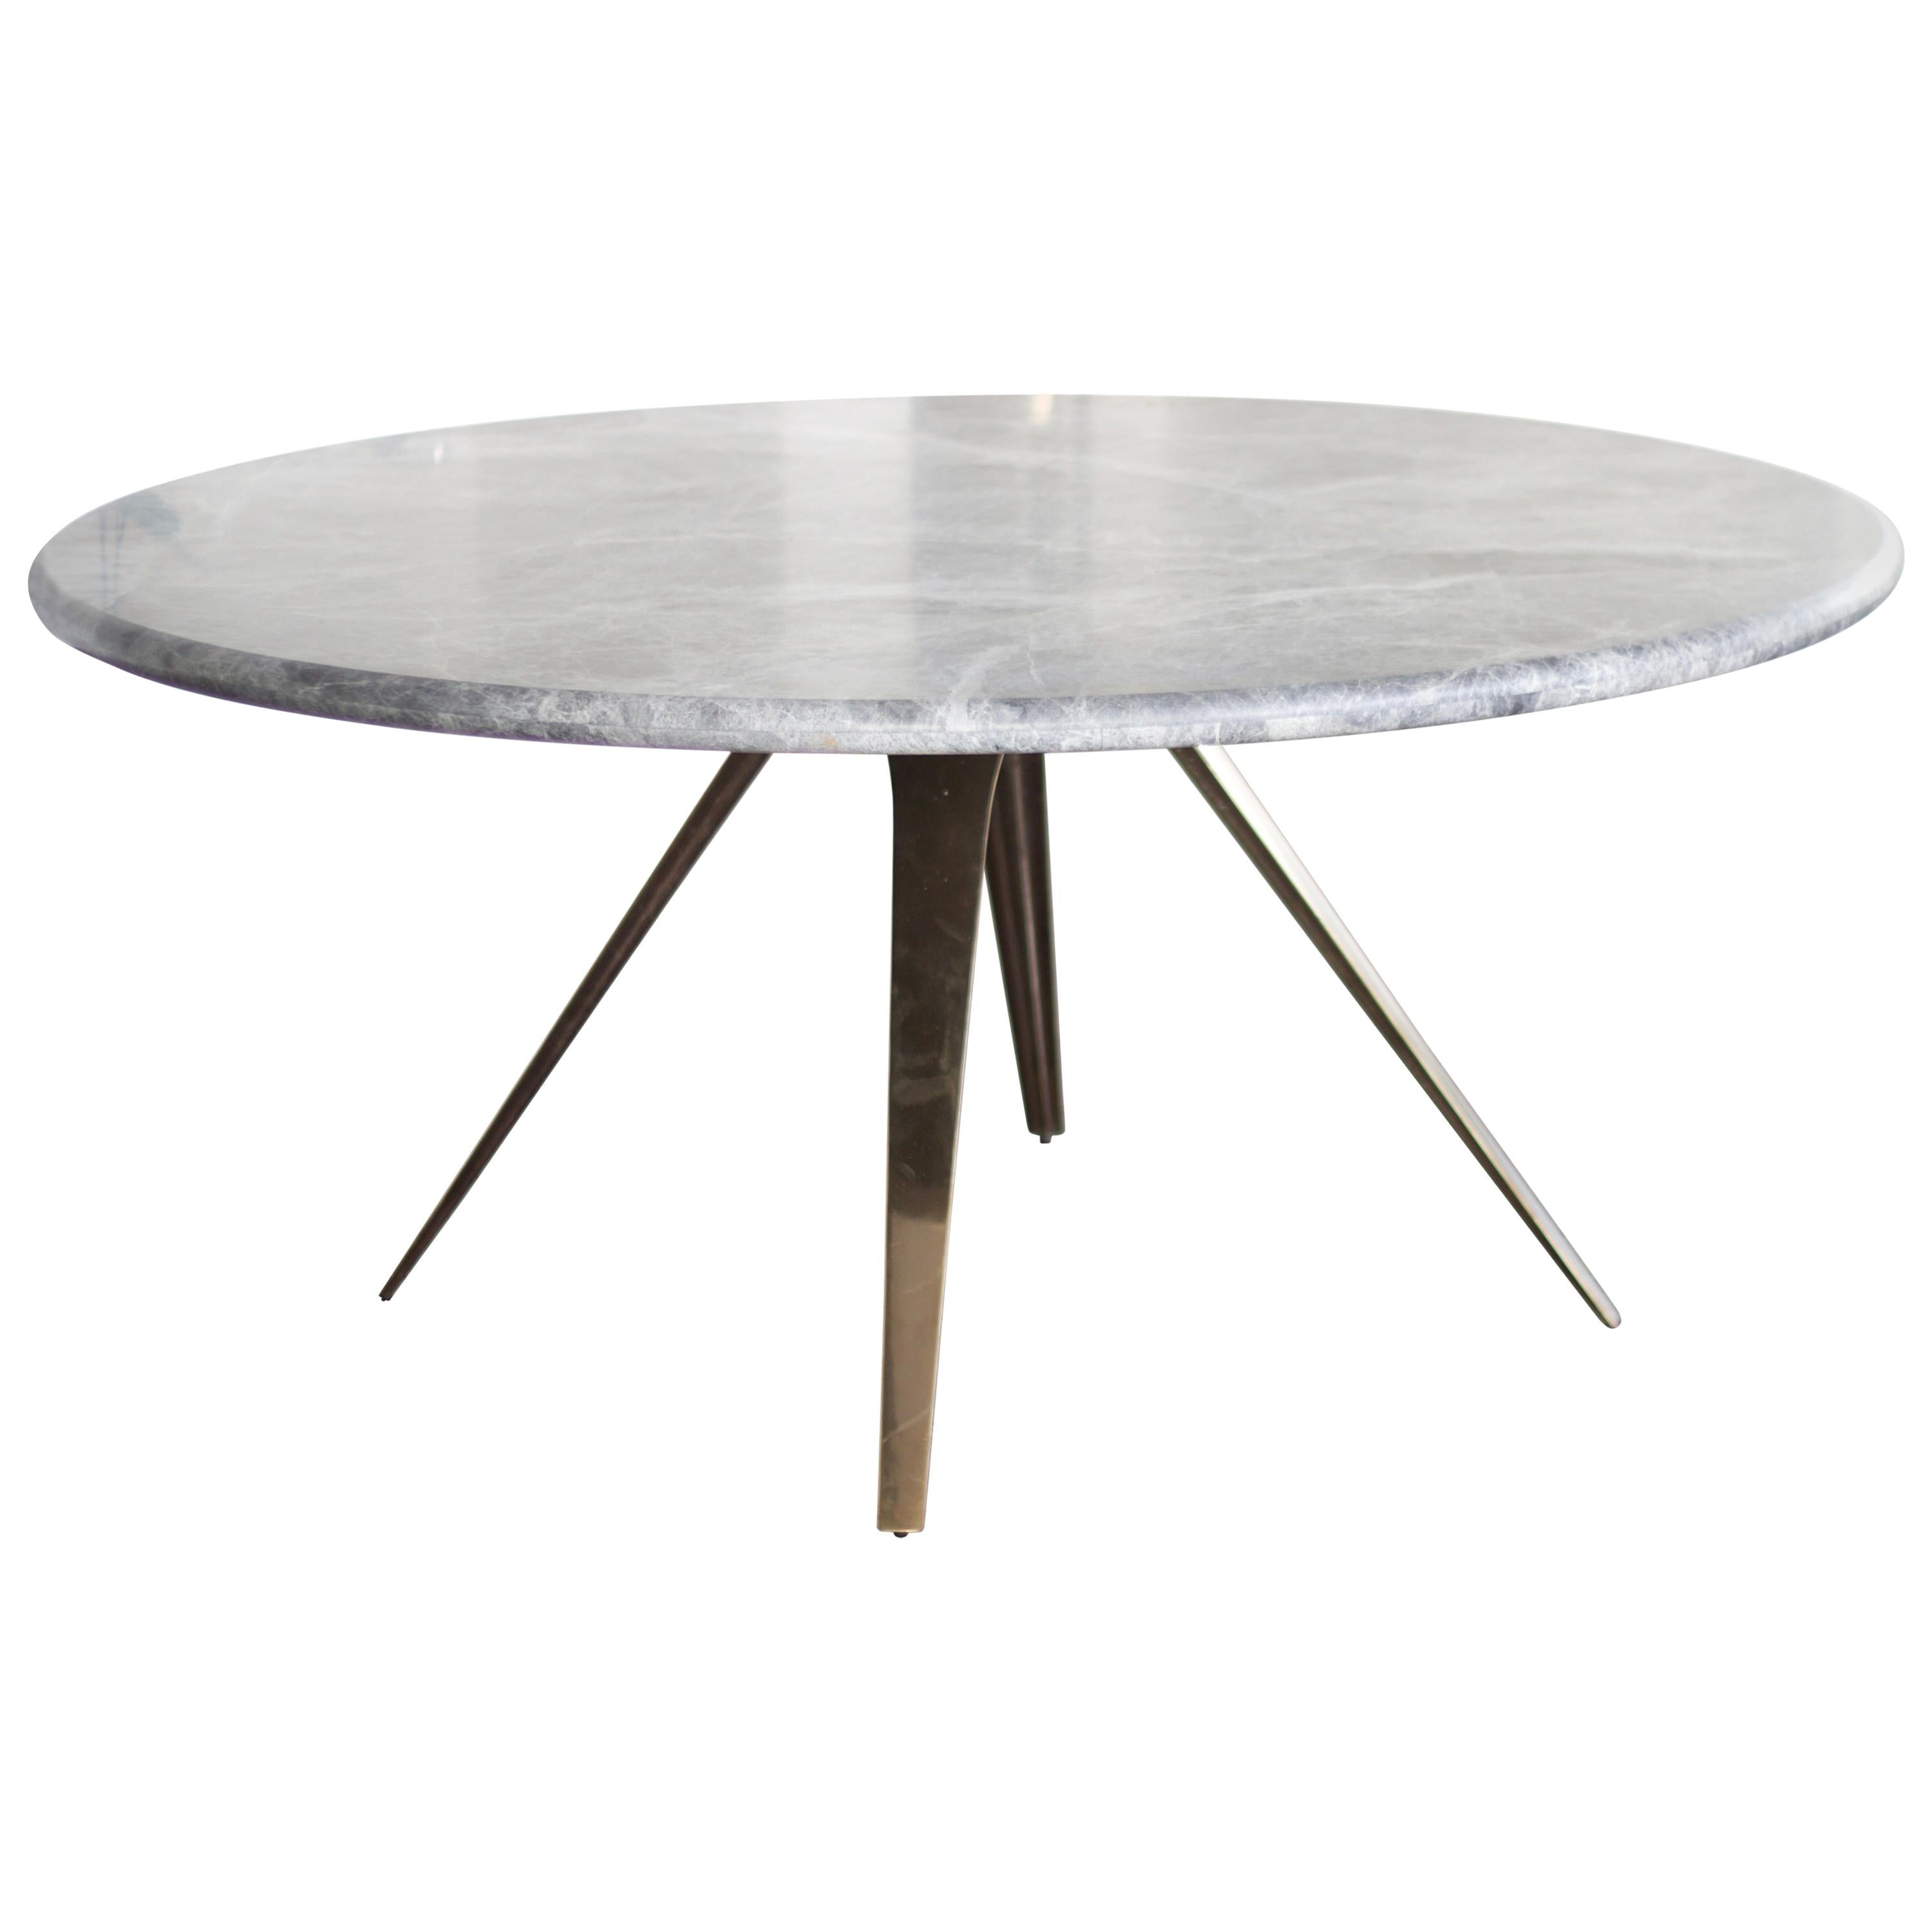 Barbera Spargere Round Table, Modern Solid Bronze Base with Stone Top